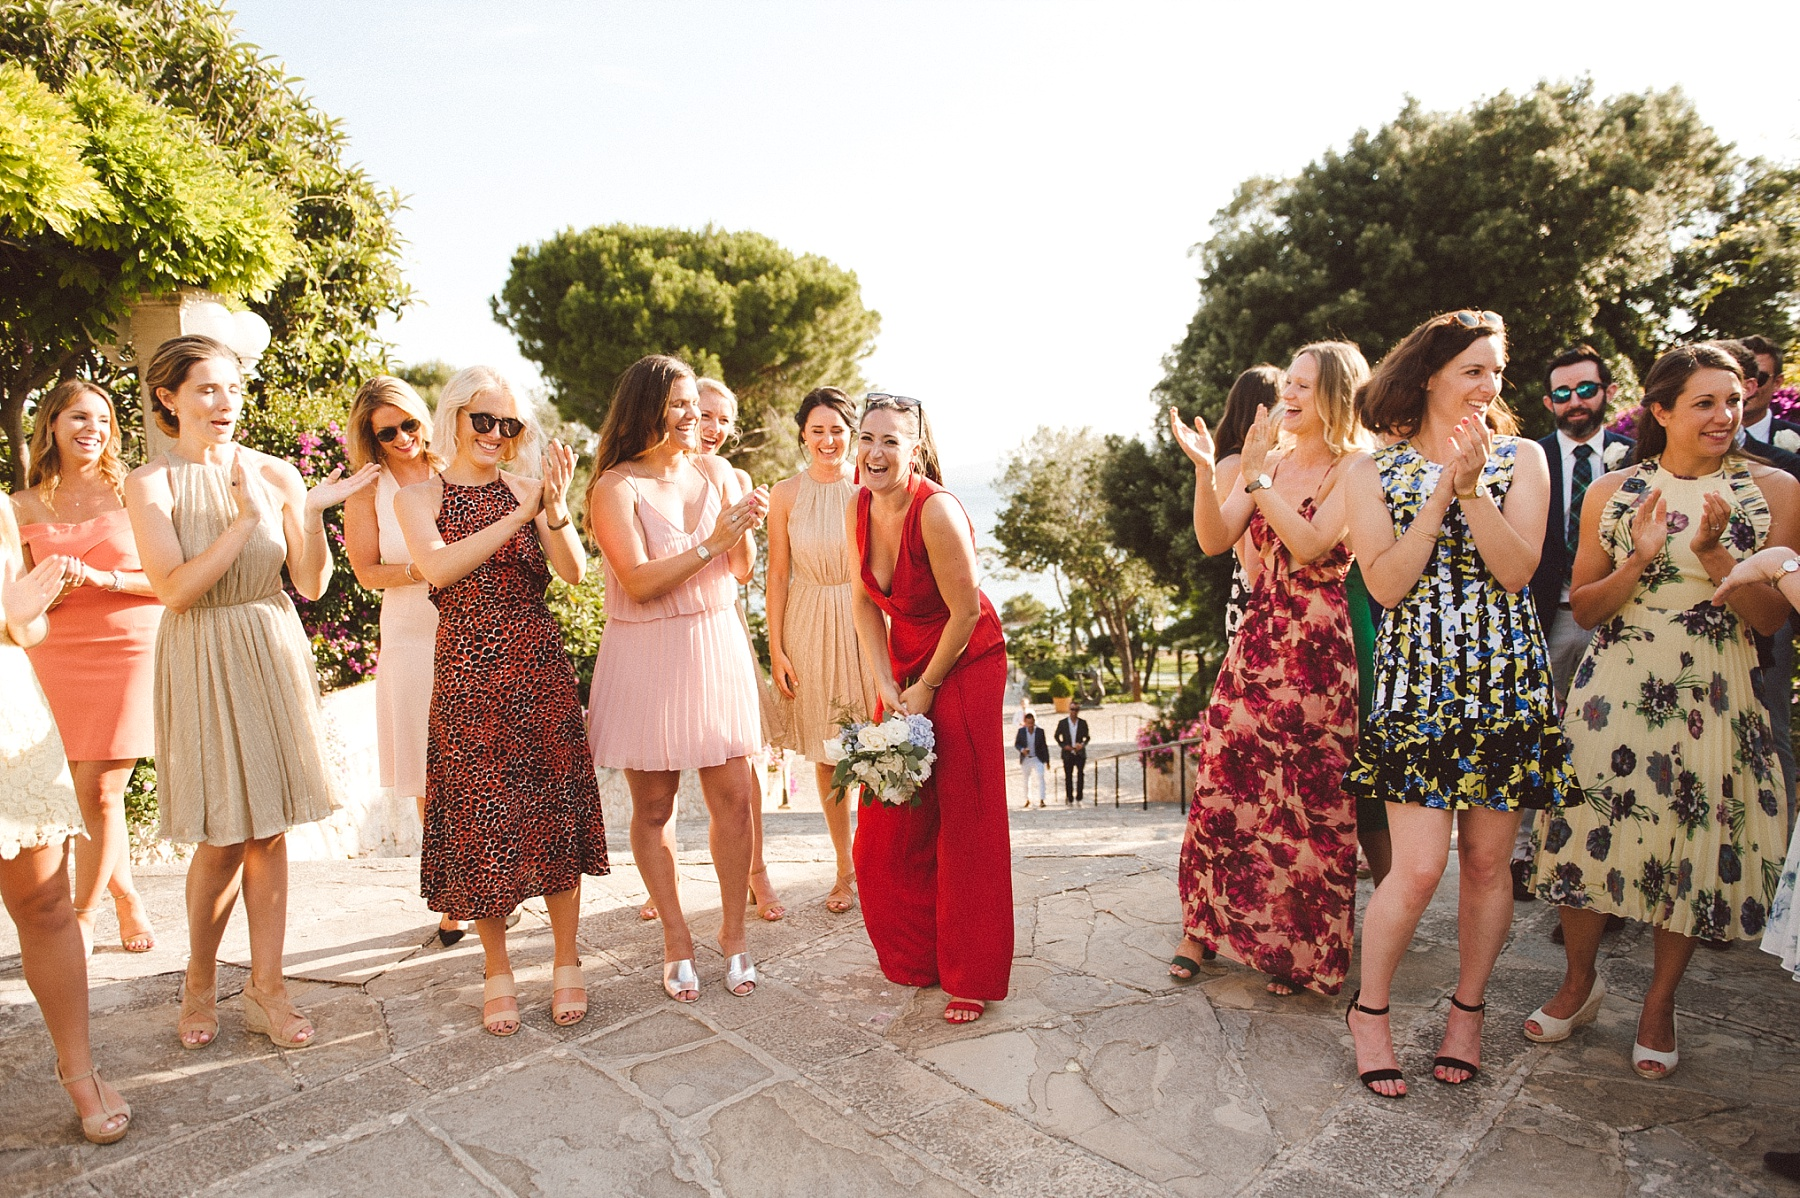 Getting married in Spain